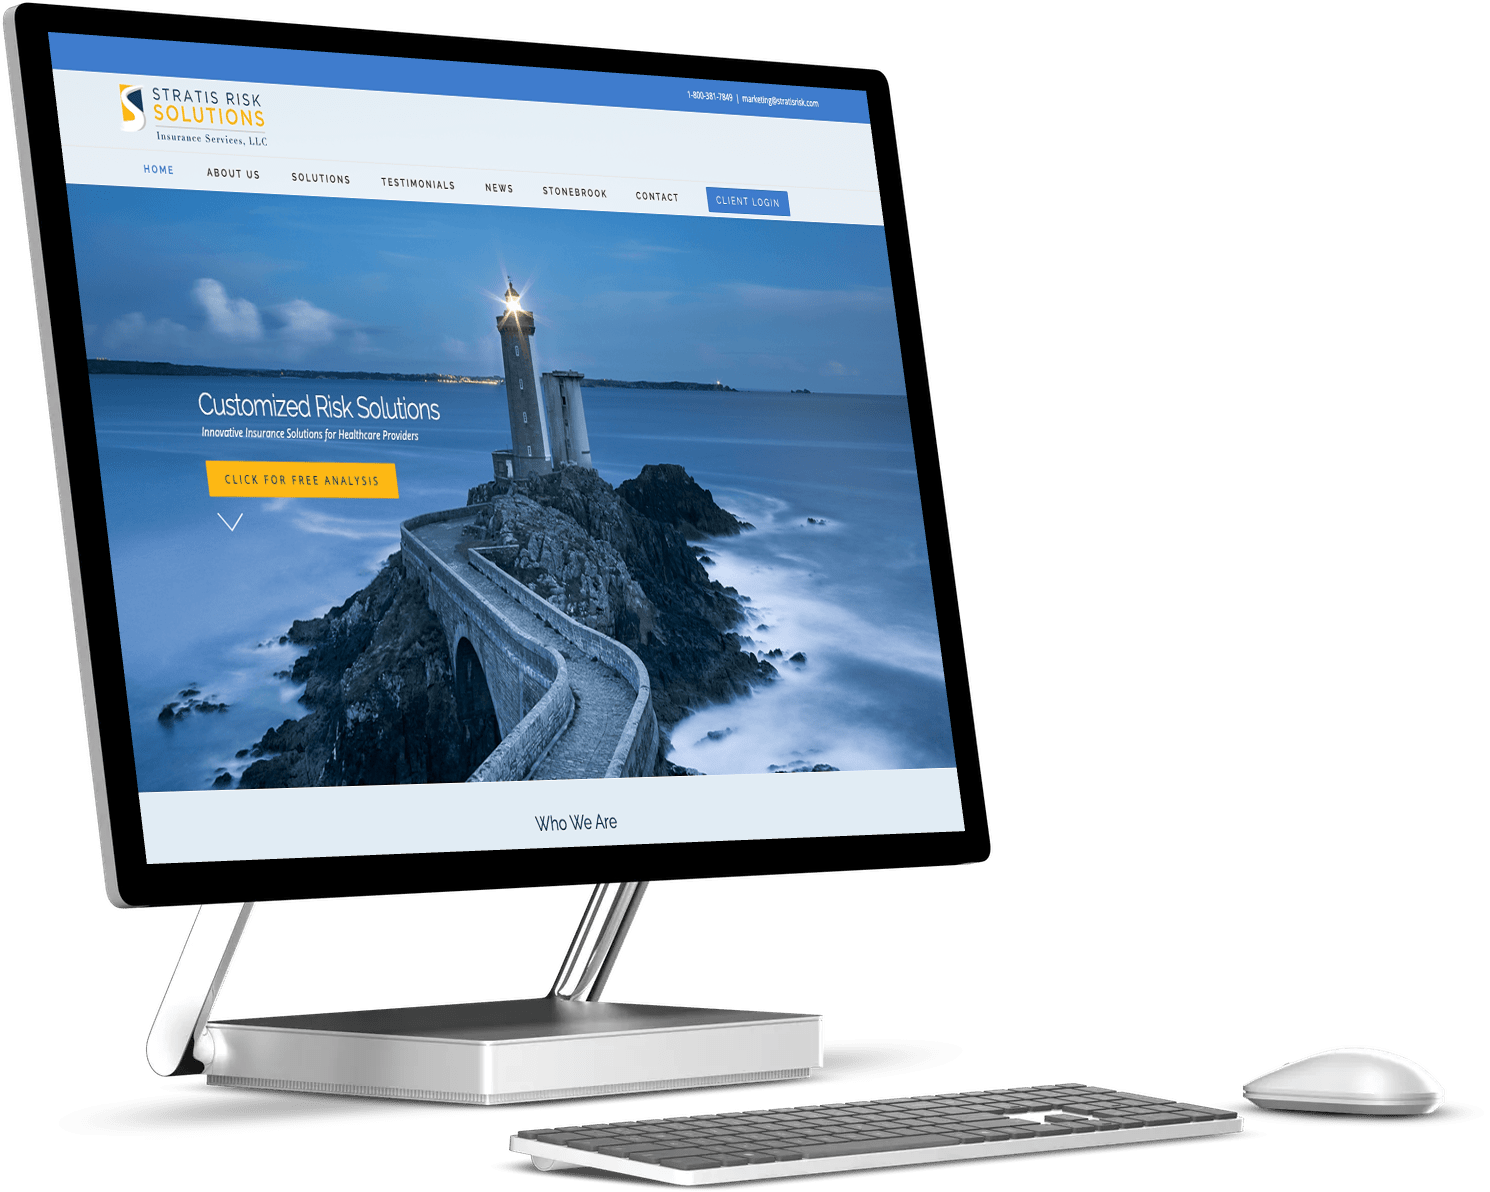 The Hawaii Angency Web Design Insurance Company Case Studies